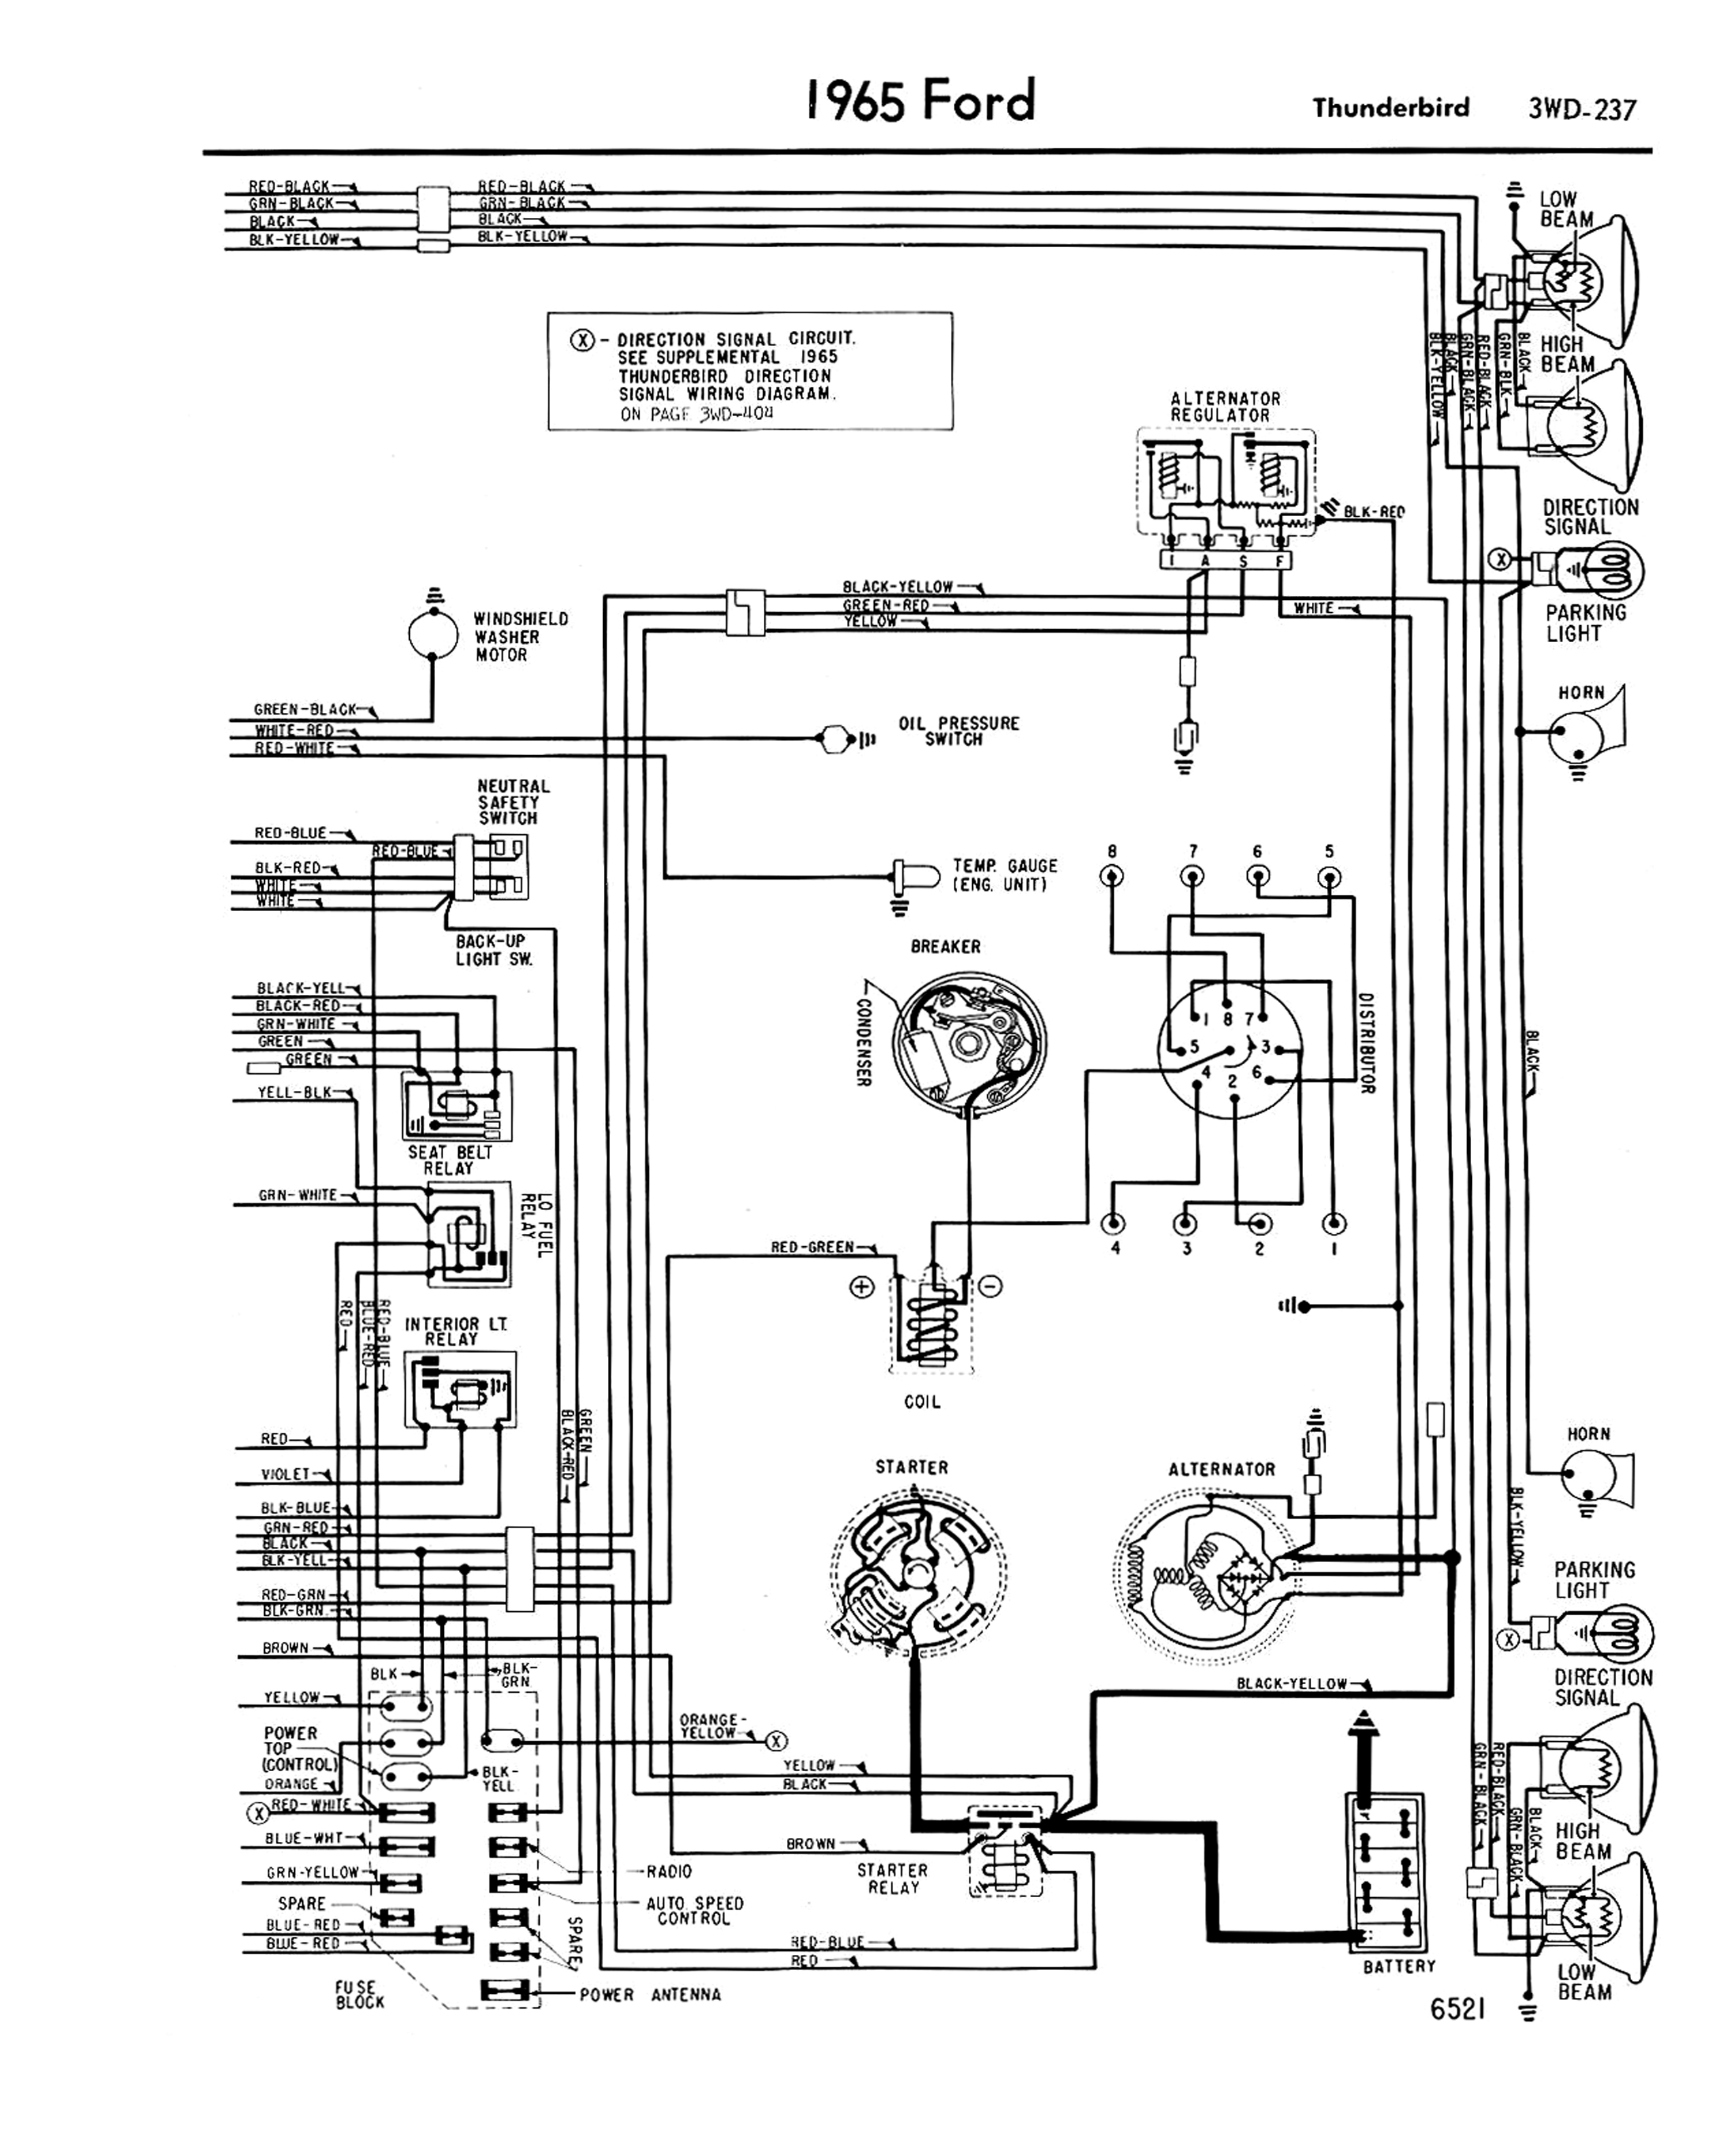 1967 Ford Thunderbird Turn Signal Switch Wiring Diagram